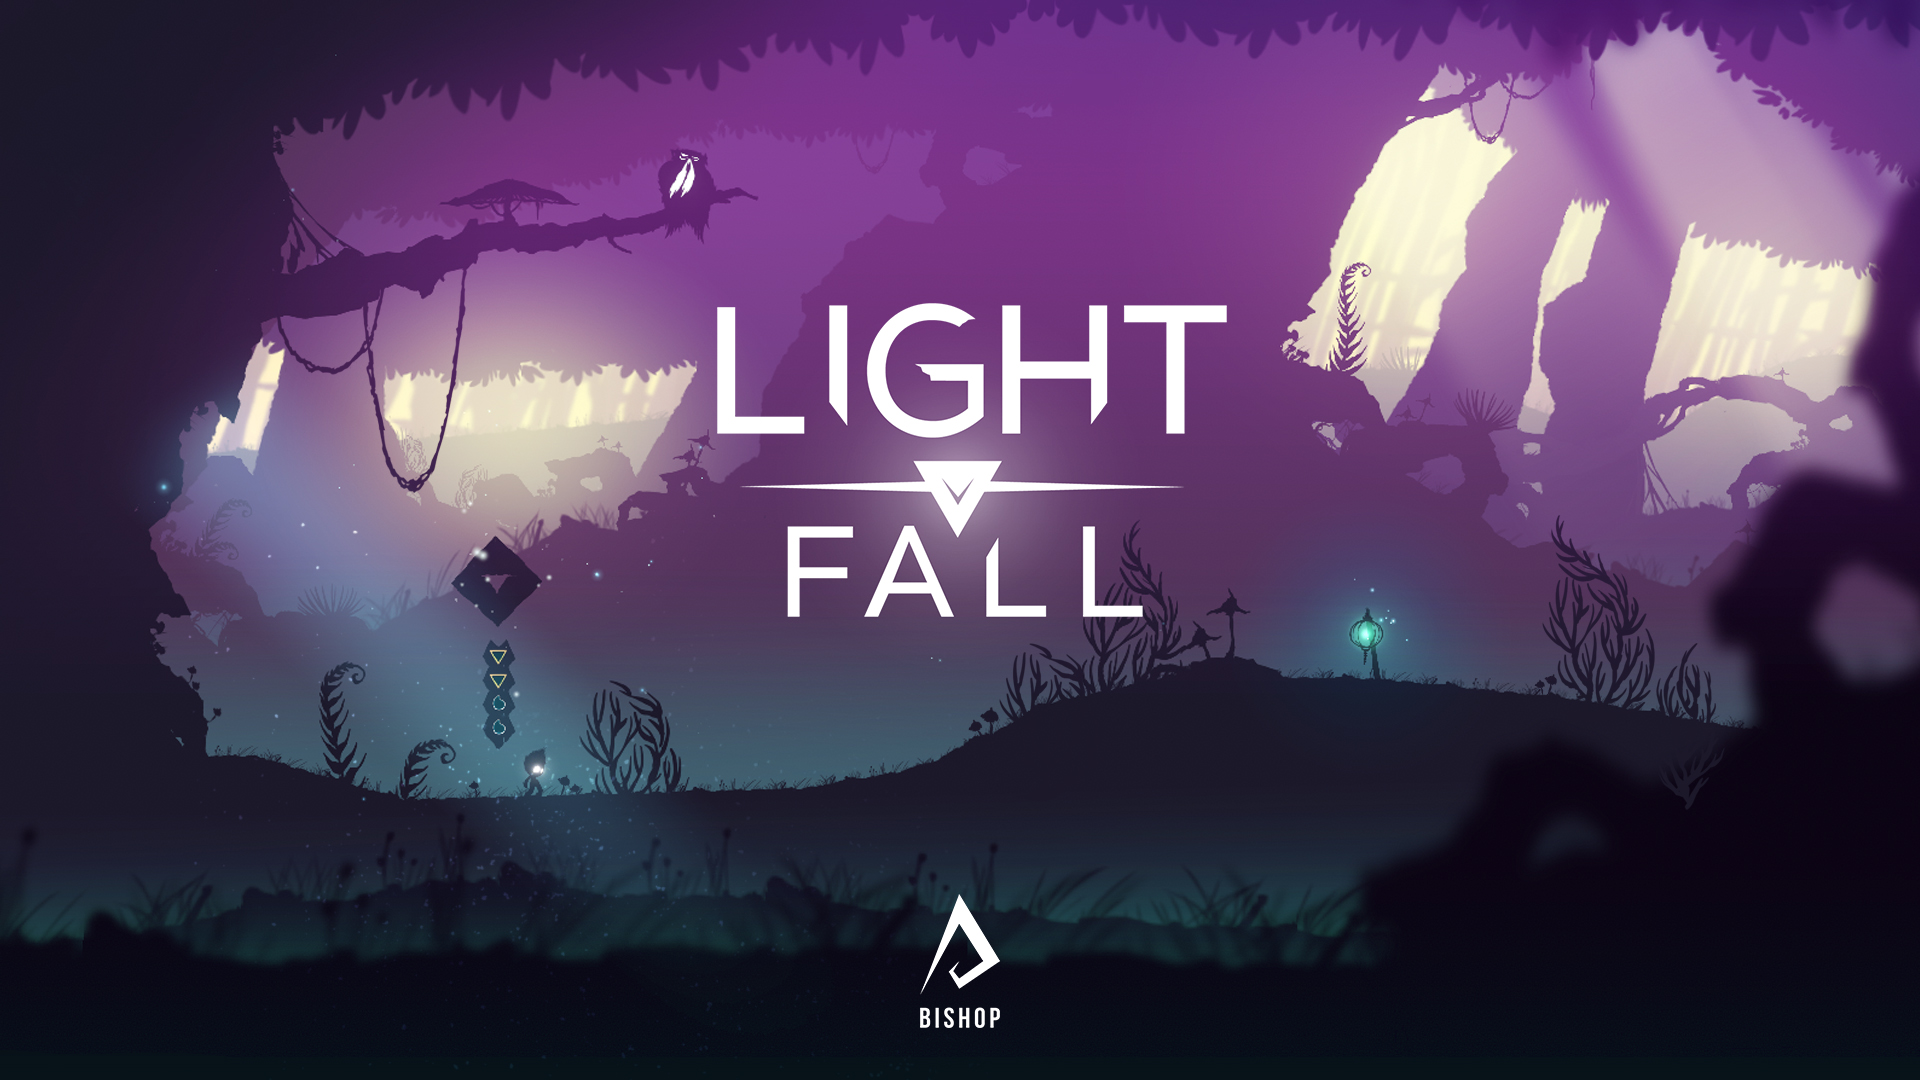 LightFallHeader.jpg